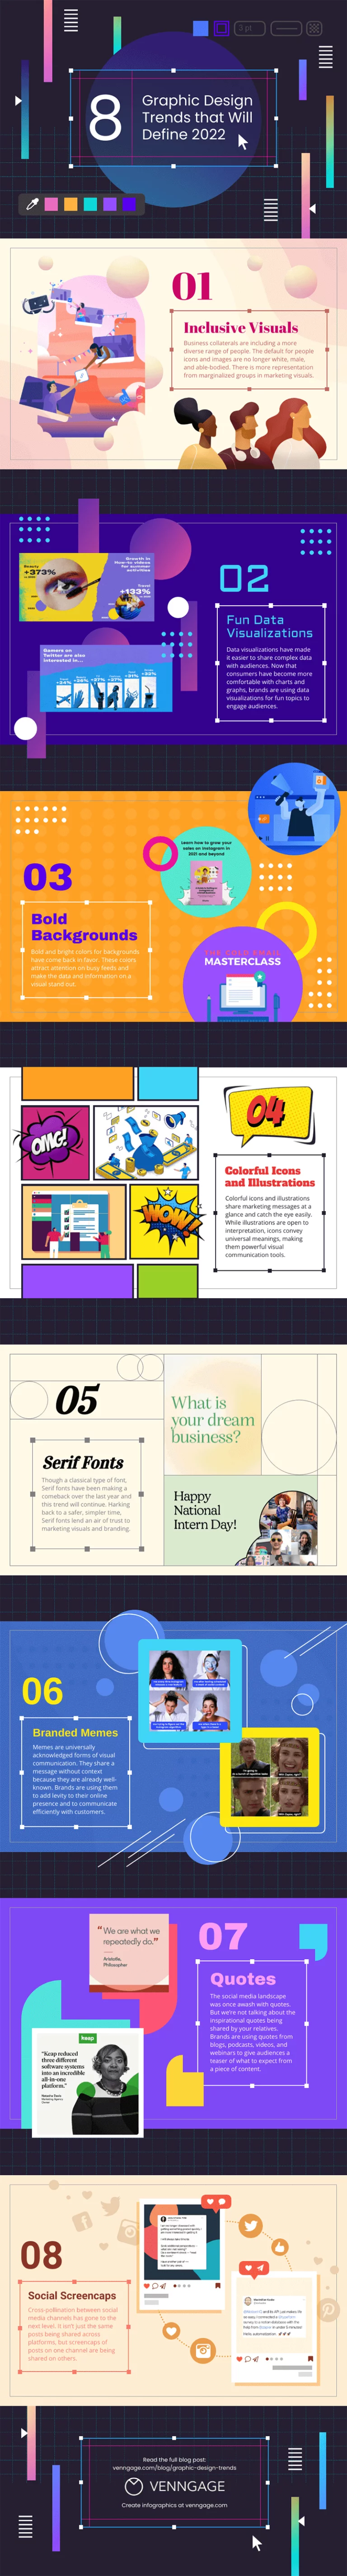 8 Graphic Design Trends for 2022 listing